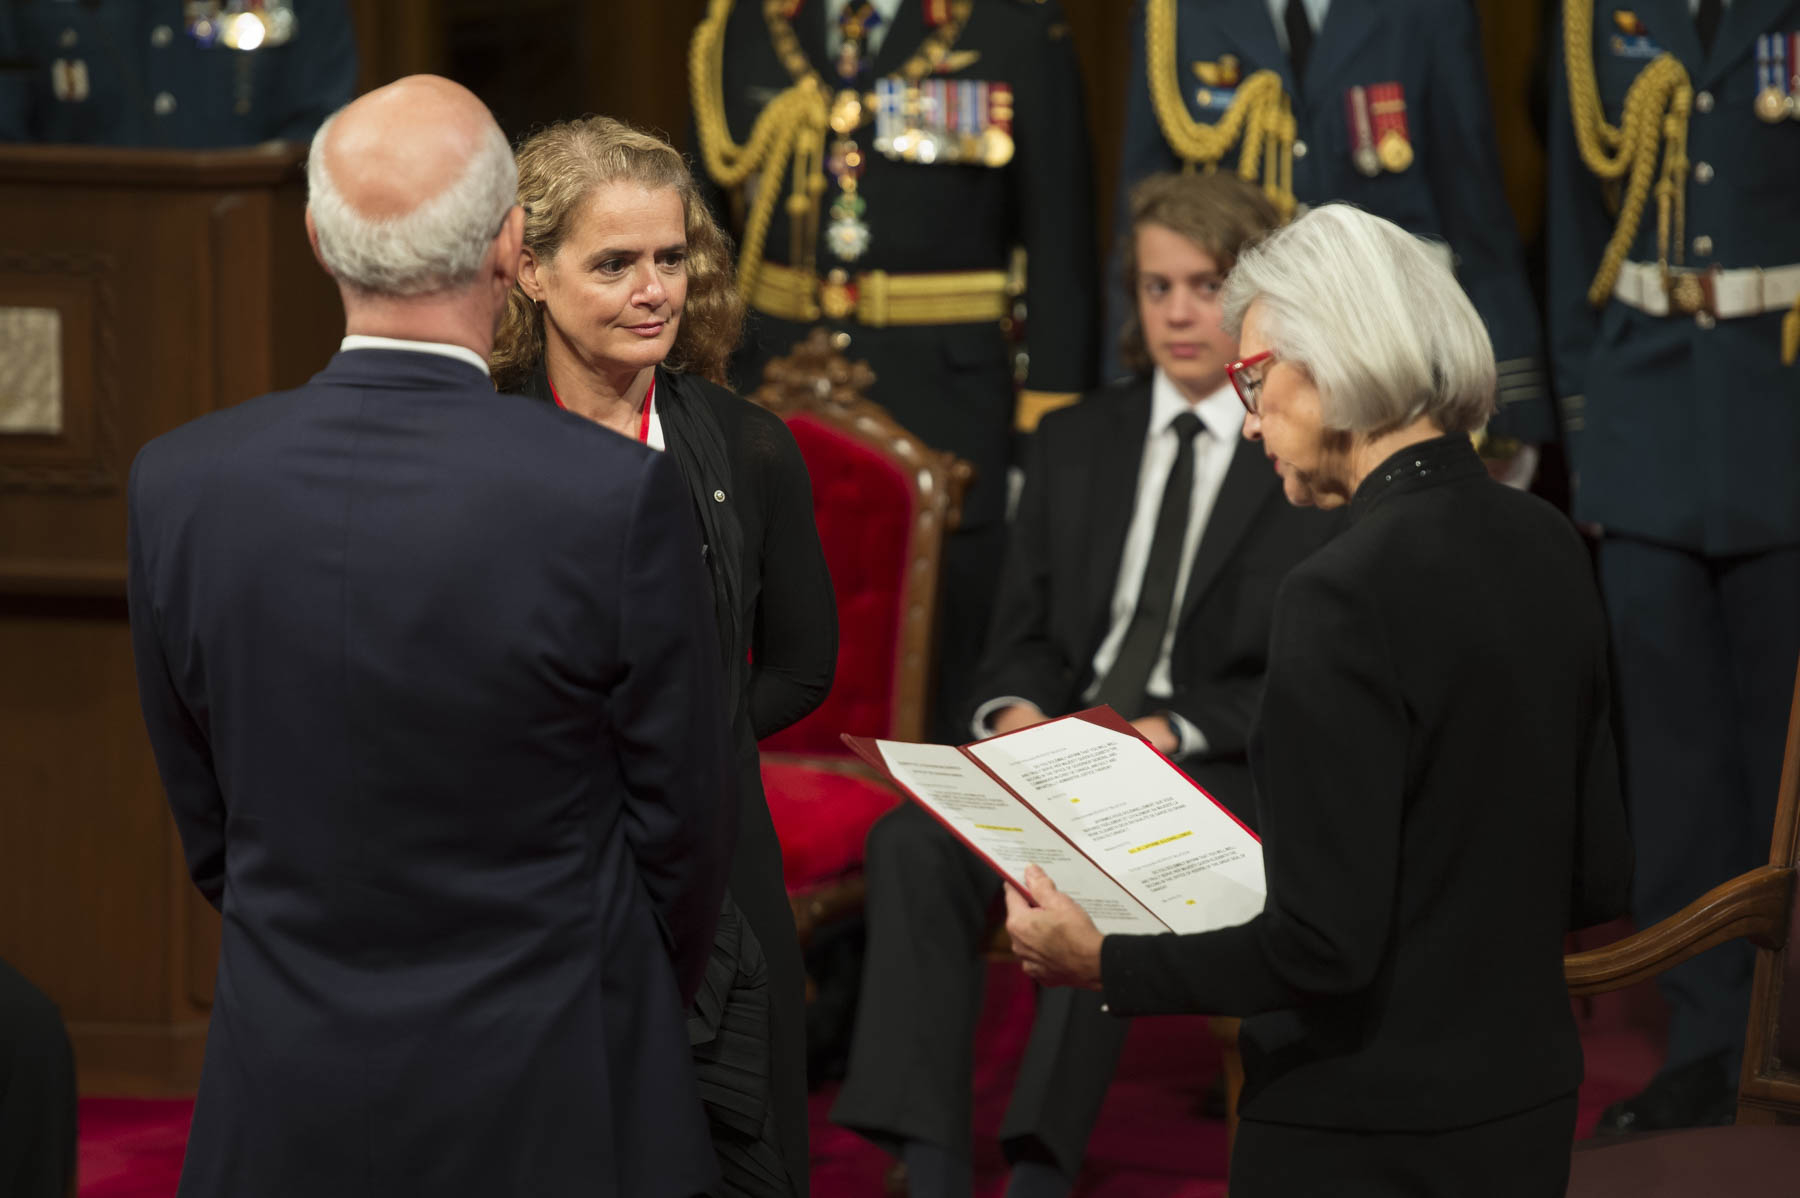 The Right Honourable Beverley McLachlin, Chief Justice of Canada, administered the Oaths.